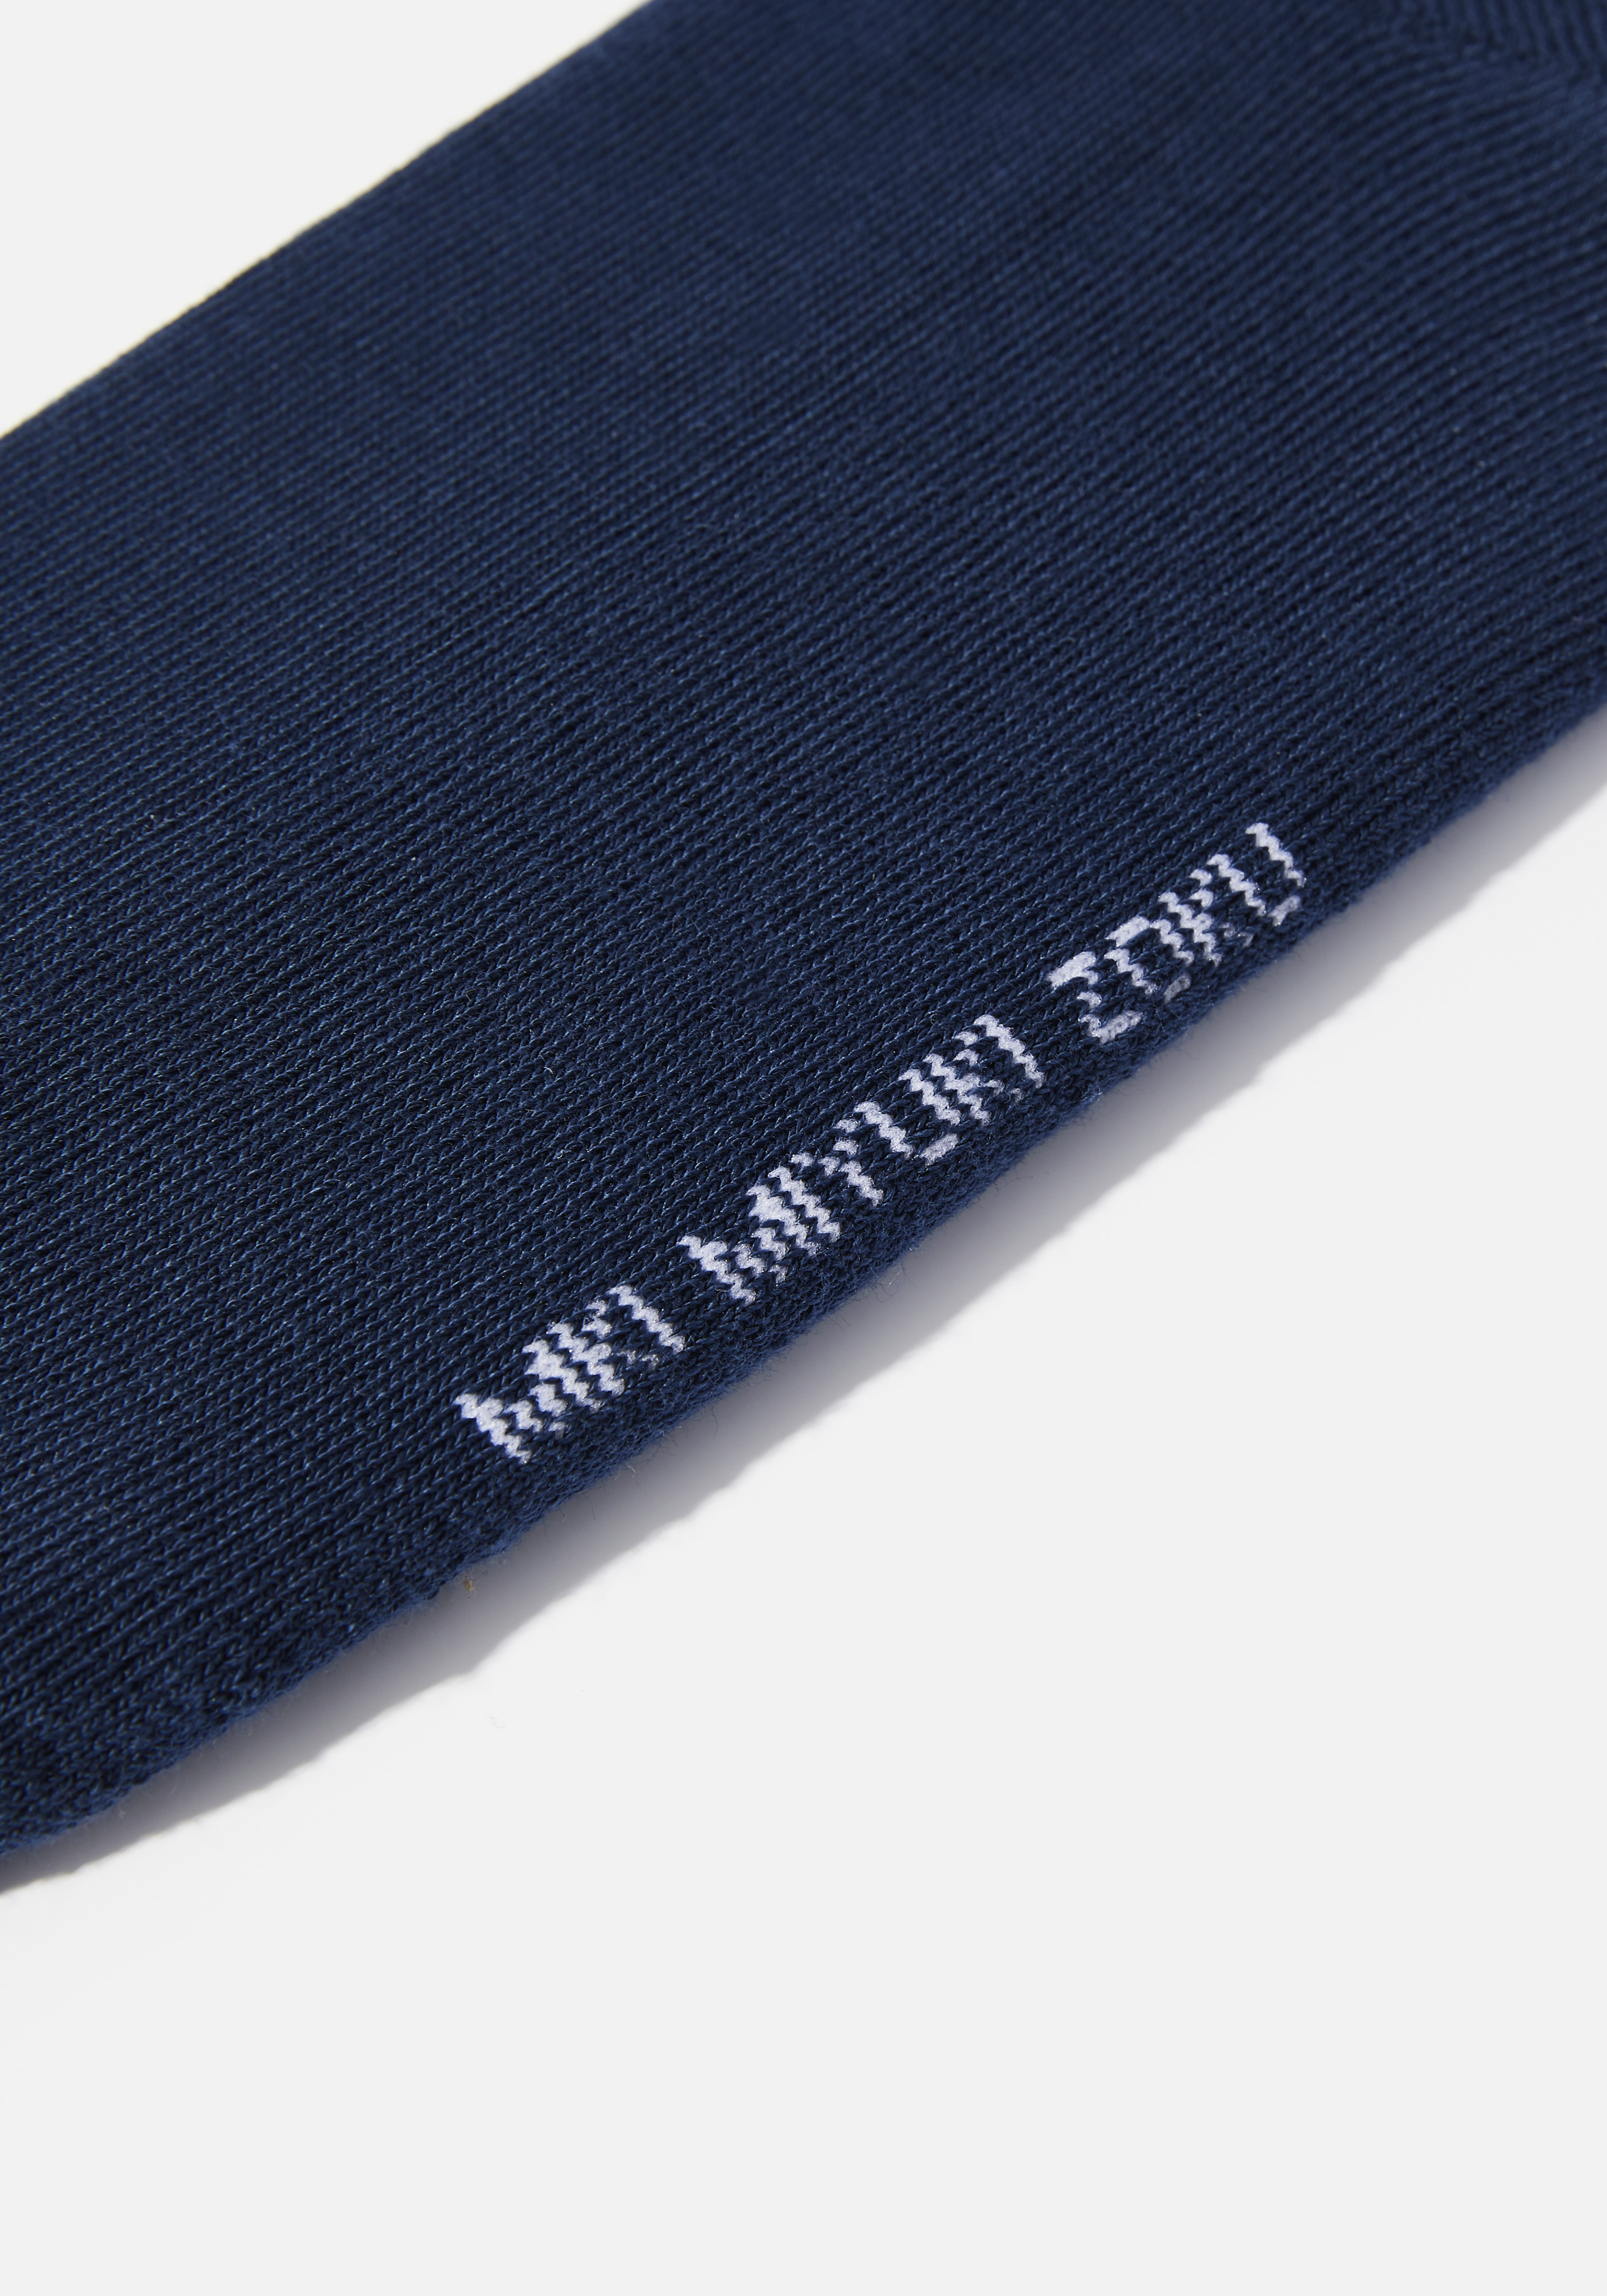 mki signature socks 4